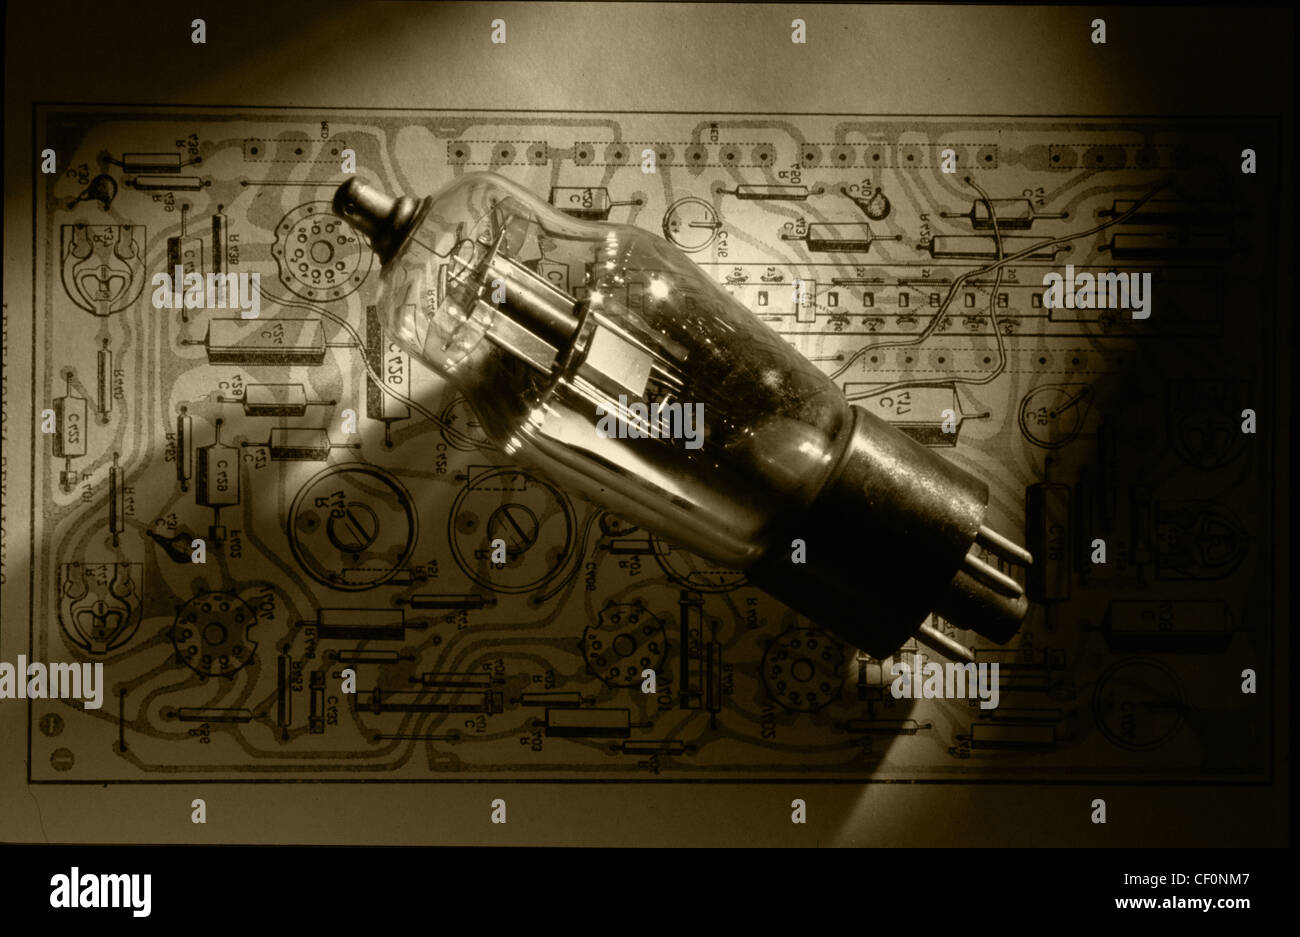 Old style Mullard triode valve sitting on a printed circuit wiring diagram from 1960 - Stock Image